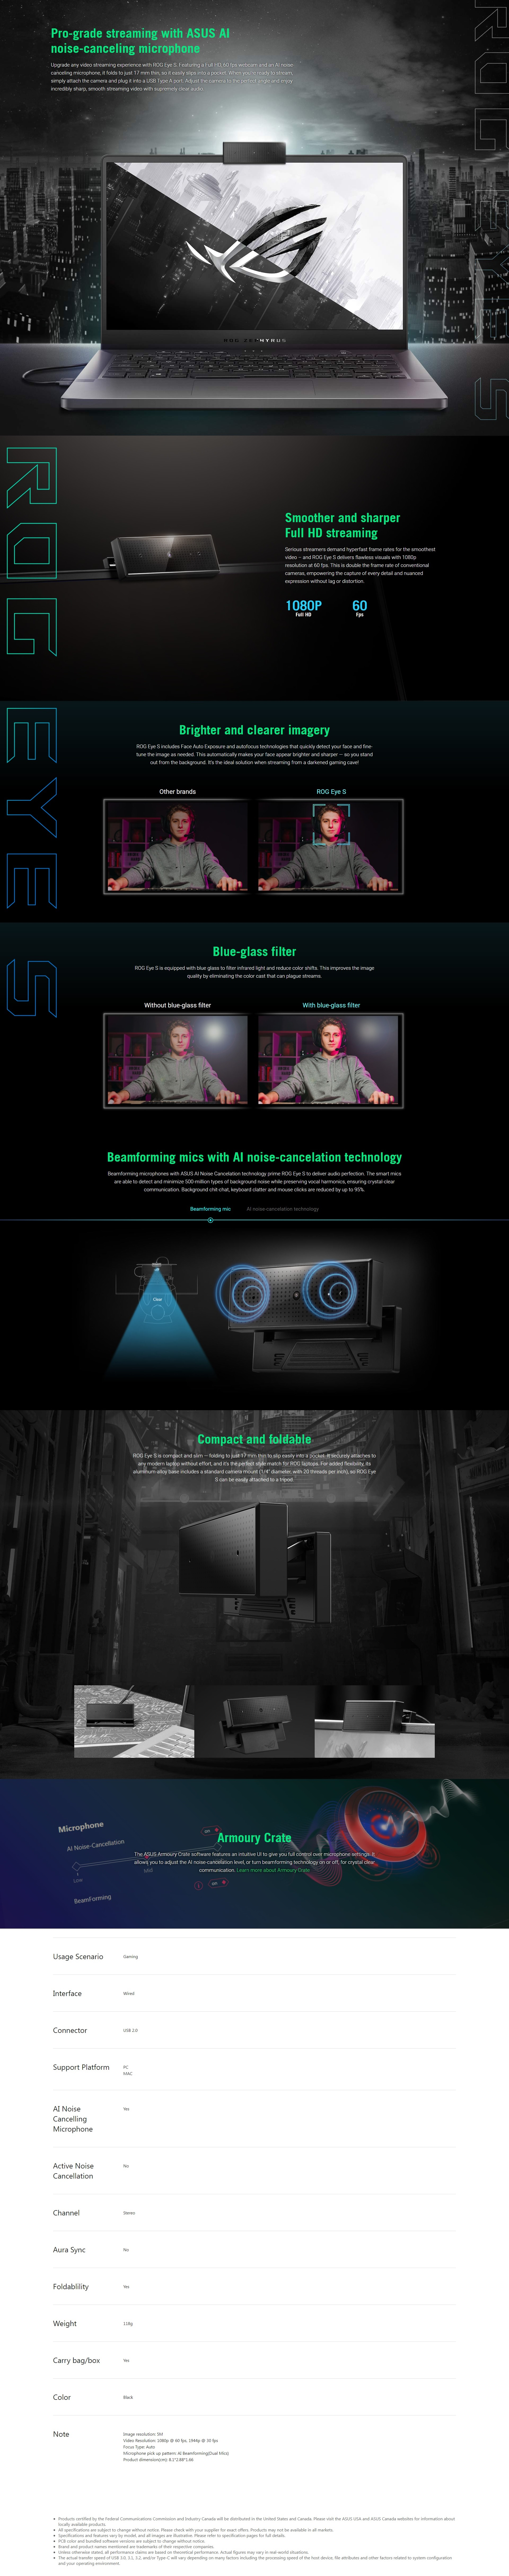 A large marketing image providing additional information about the product Asus ROG Eye S Webcam - Additional alt info not provided